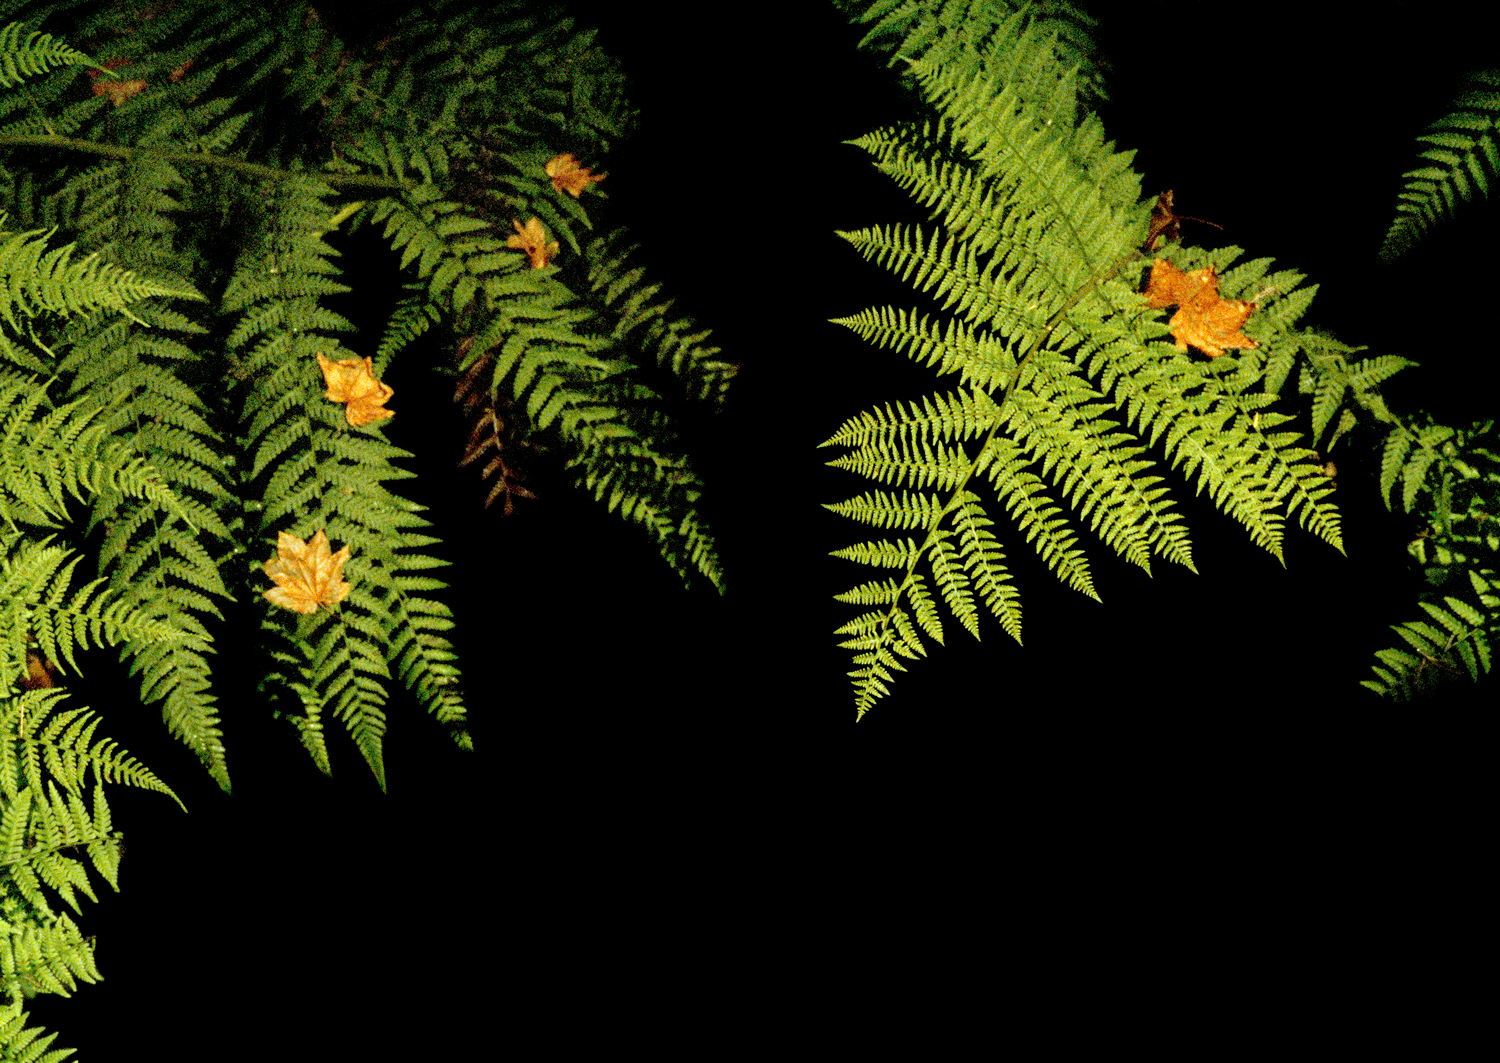 Illuminated Lady Ferns